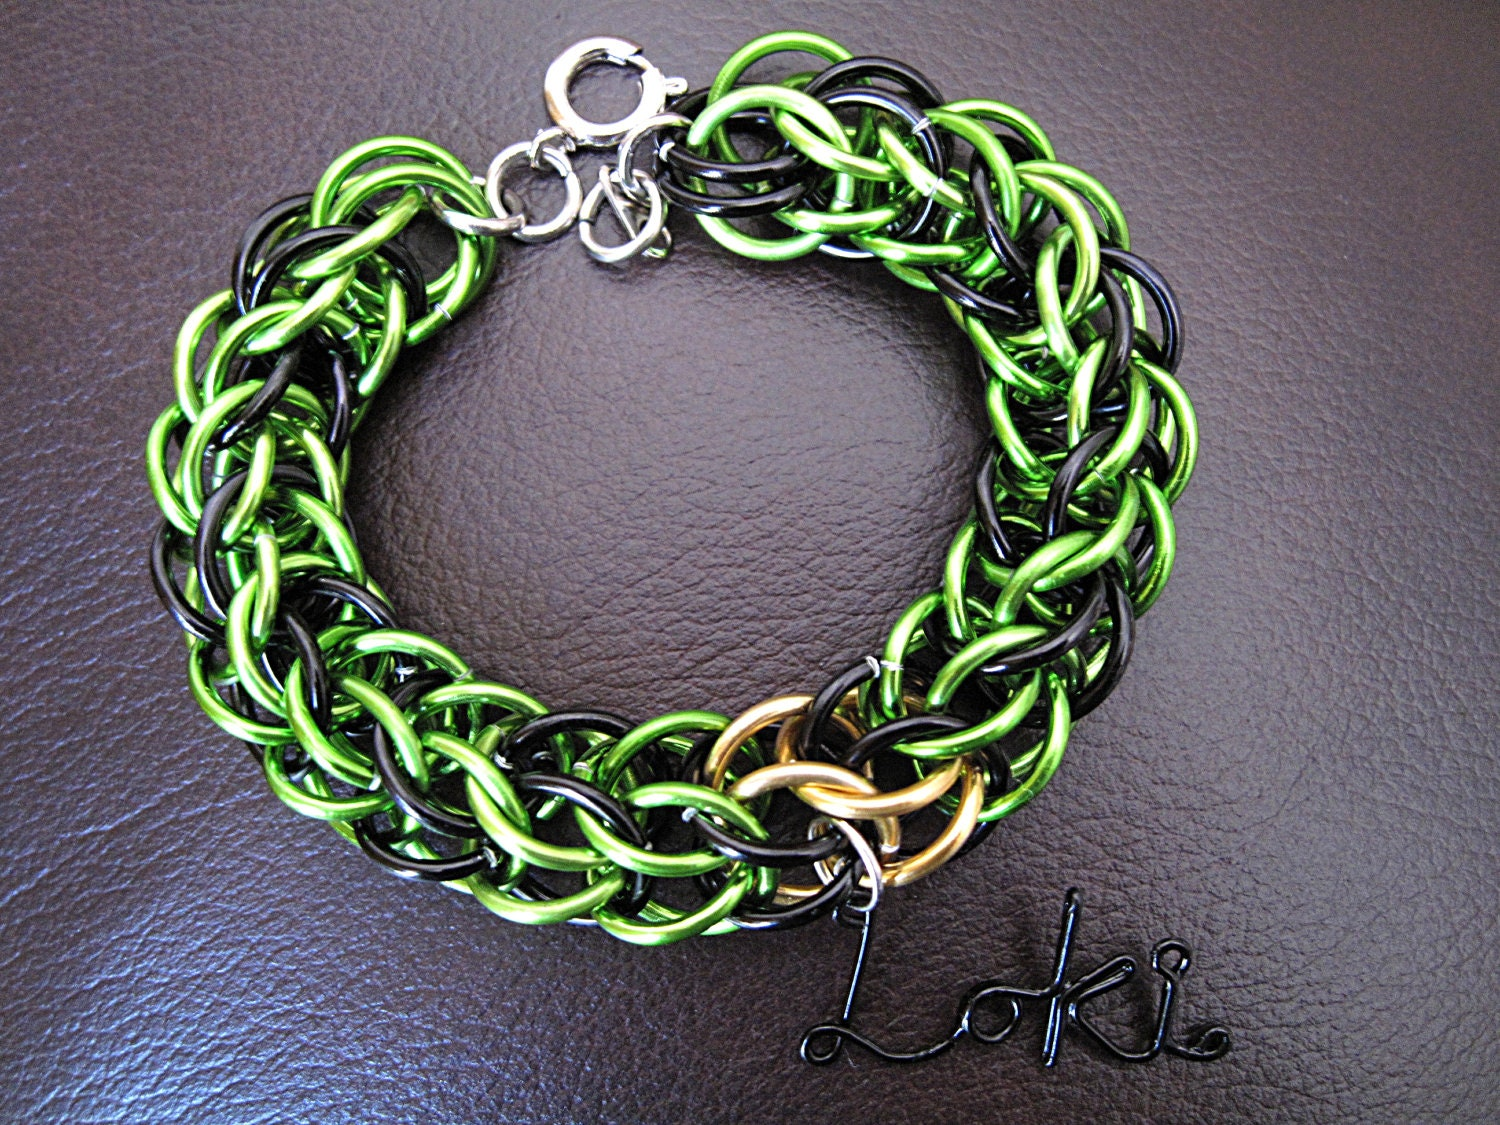 Avengers Loki Chainmaille Bracelet by SunSynJewelry on Etsy